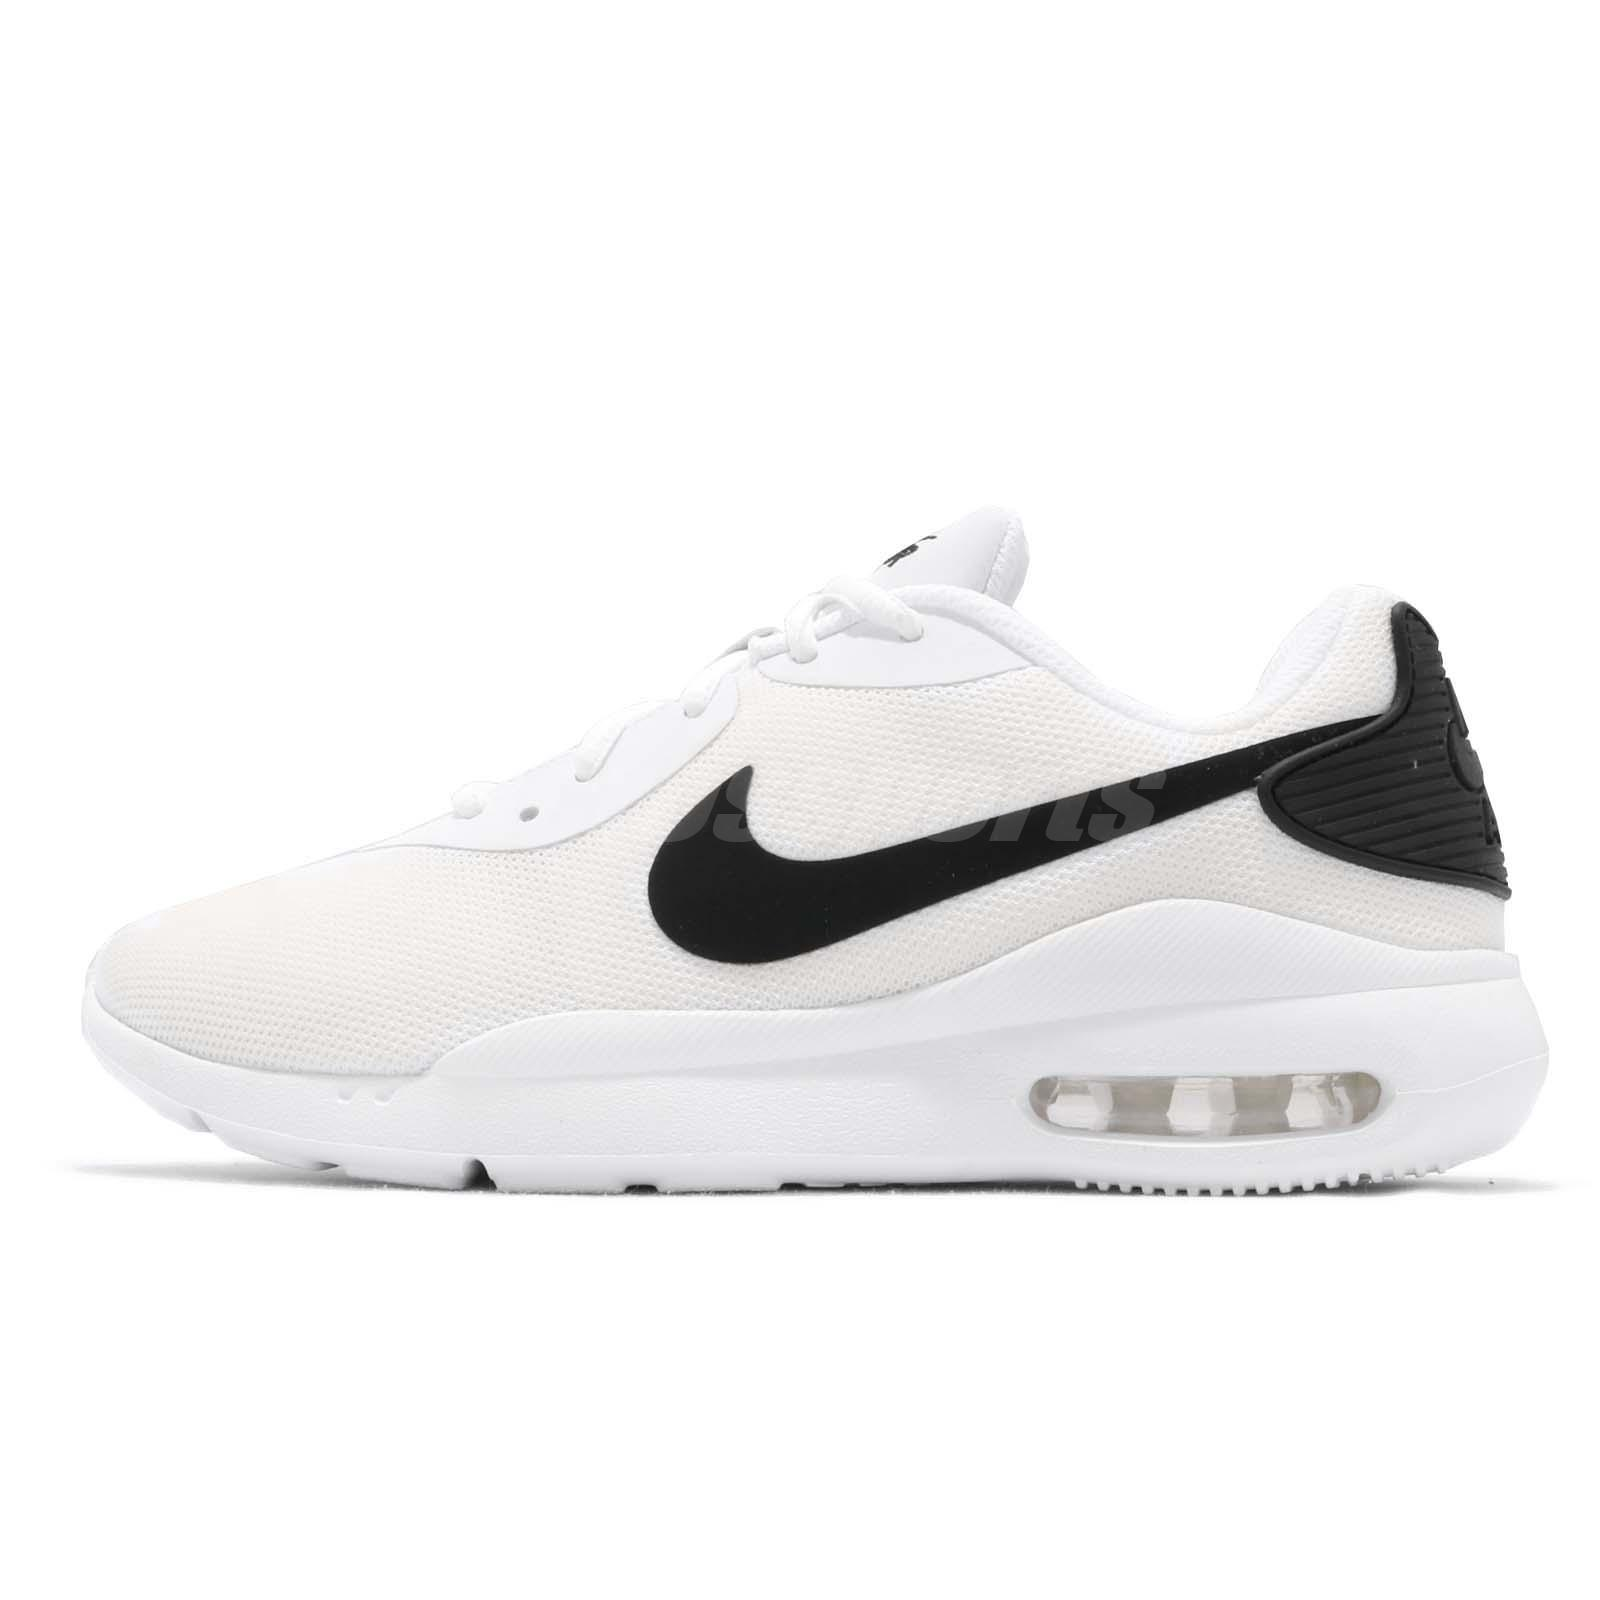 822f89b2 Details about Nike Air Max Oketo White Black Men Running Casual Shoes  Sneakers AQ2235-100